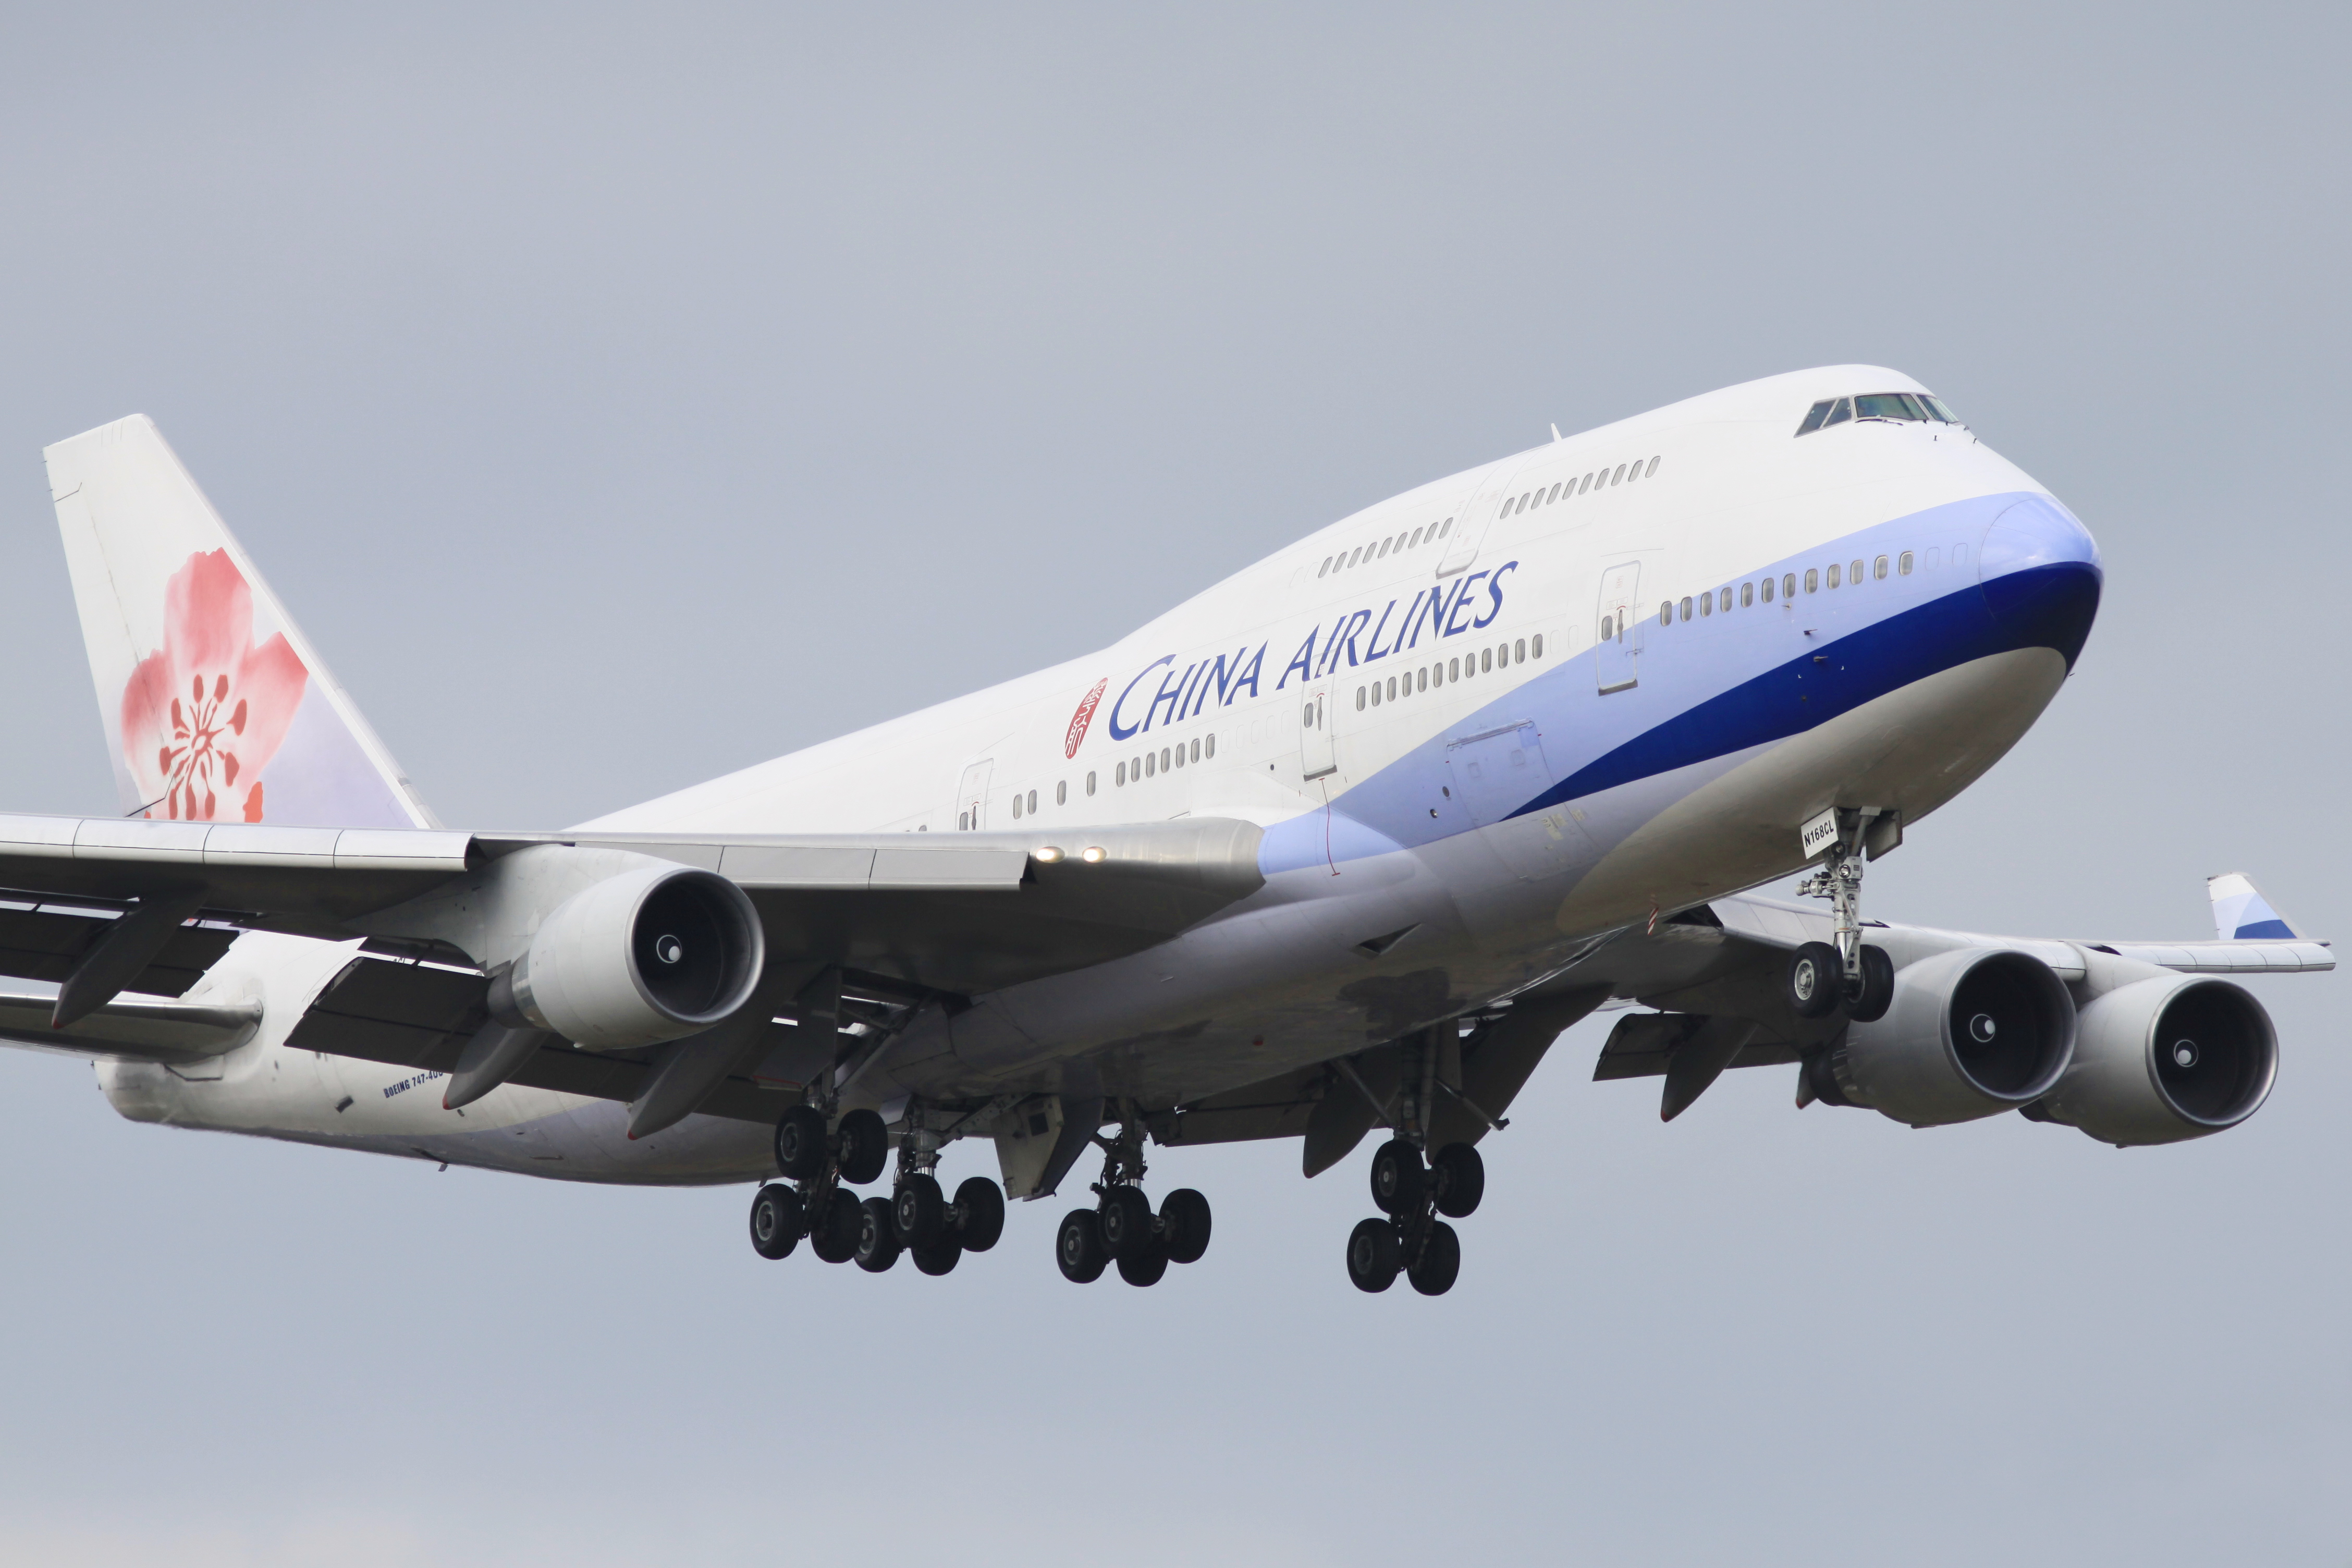 China Airlines B744